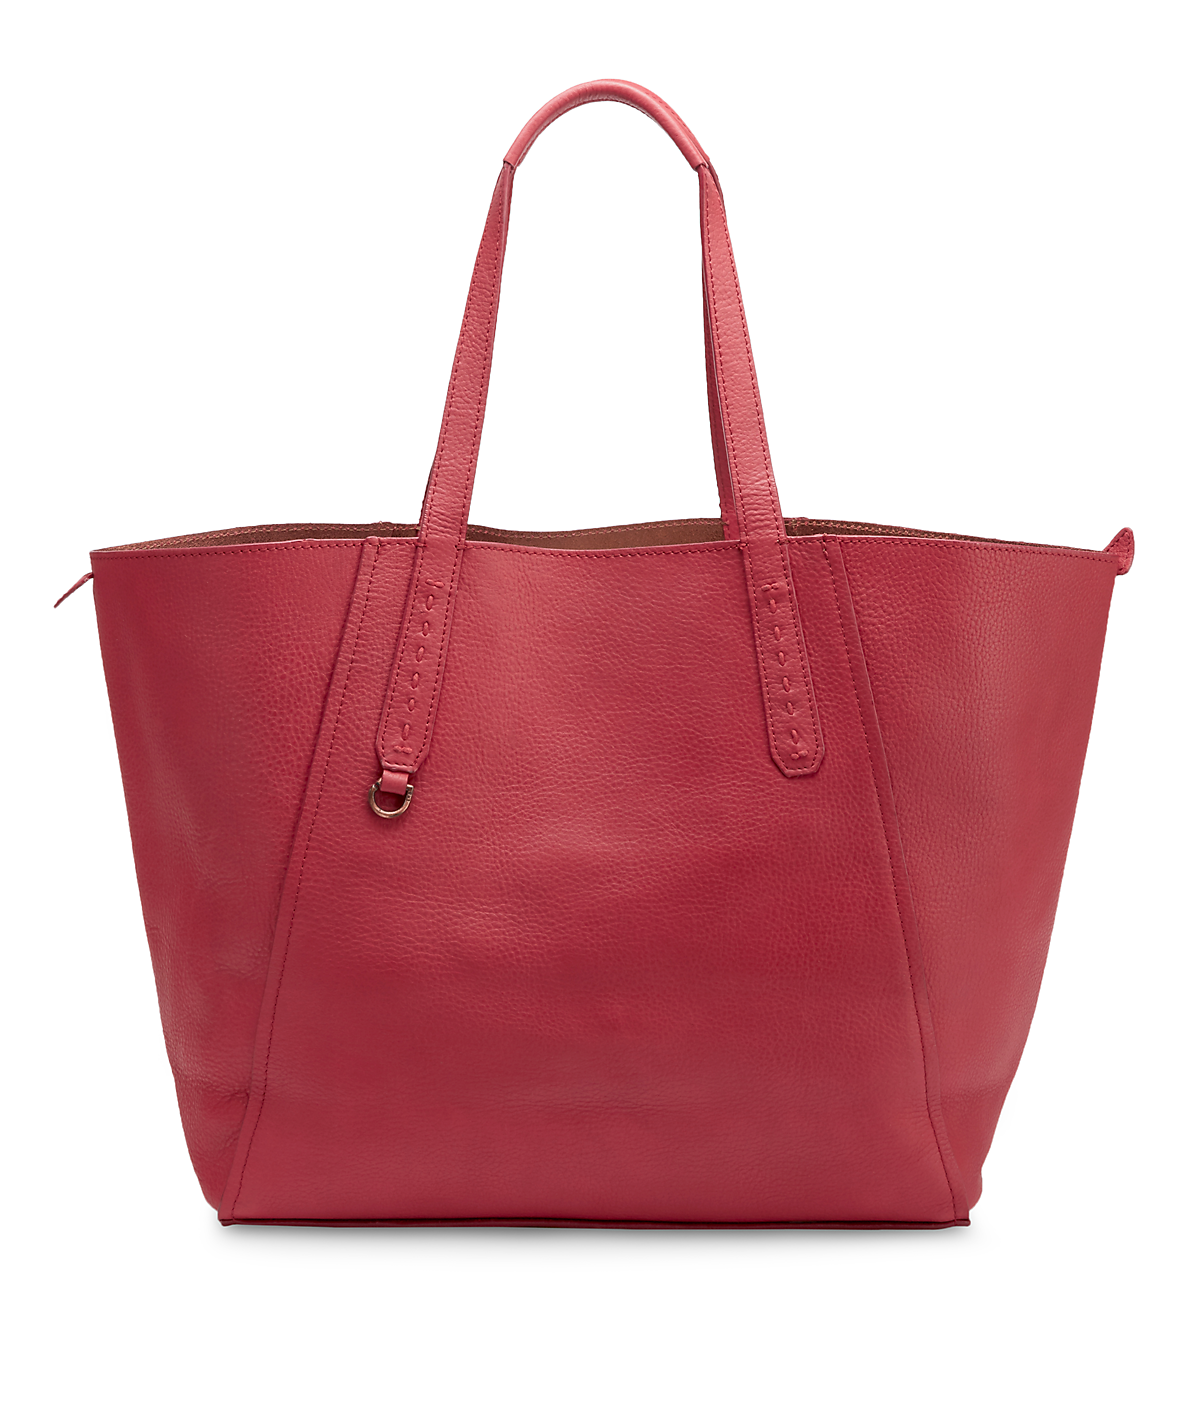 Niigata shopping bag from liebeskind